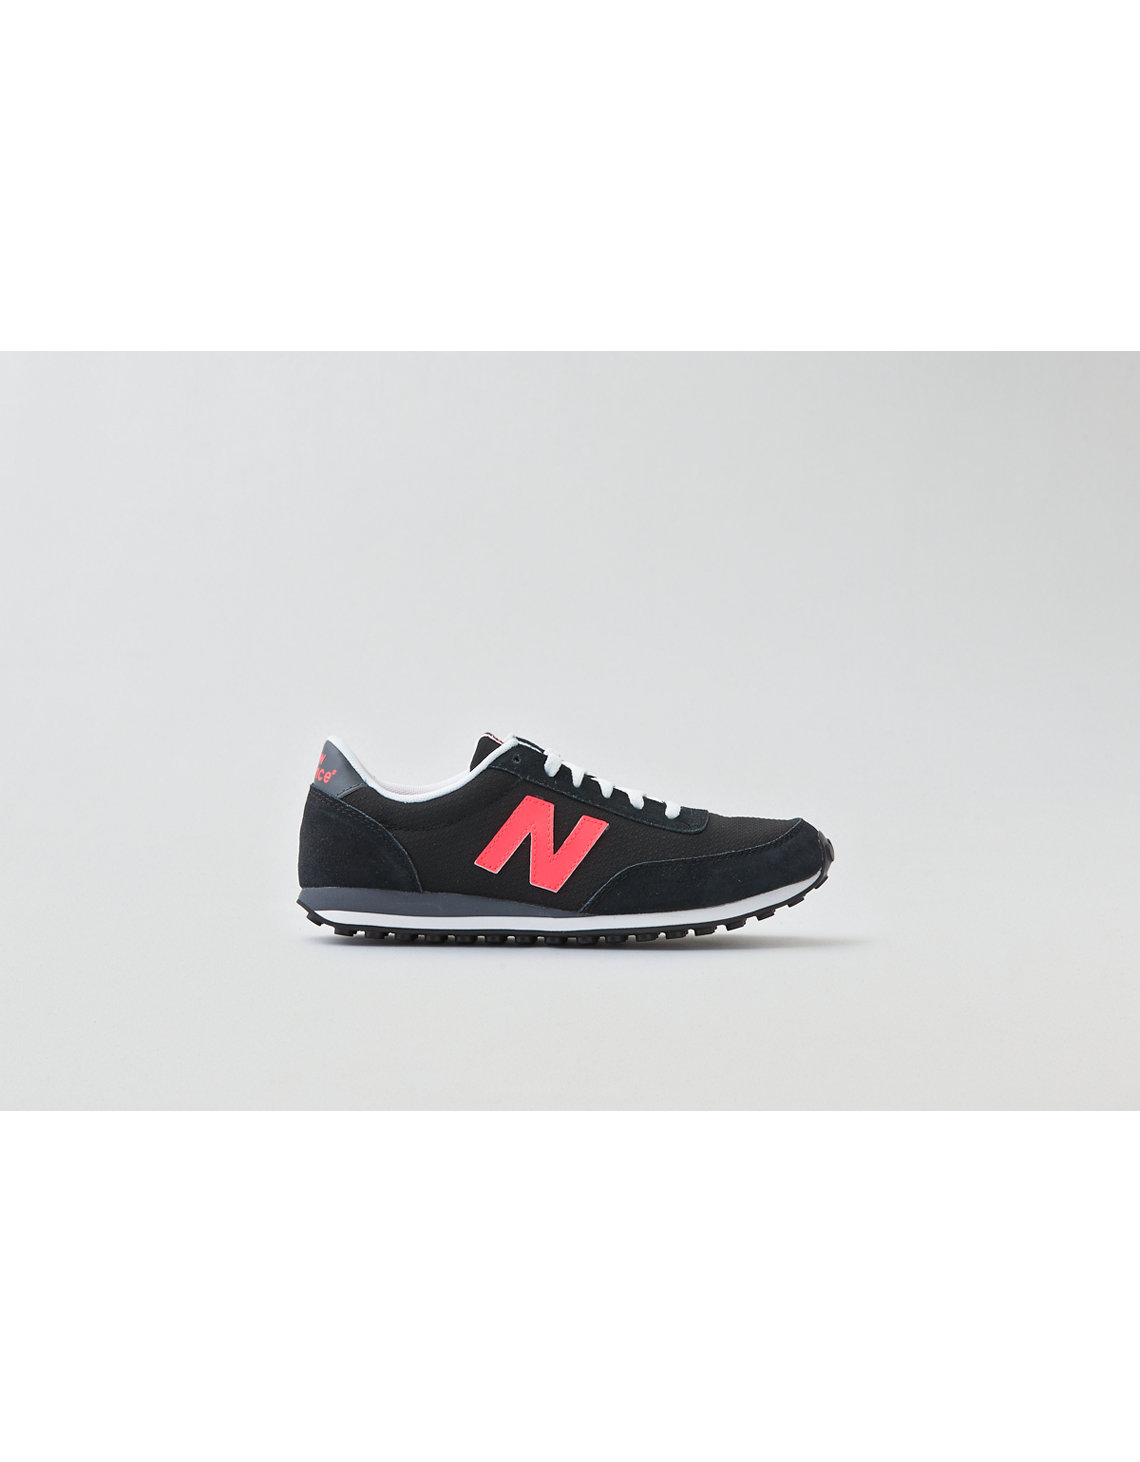 New Balance 410 Sneaker , Black | American Eagle Outfitters